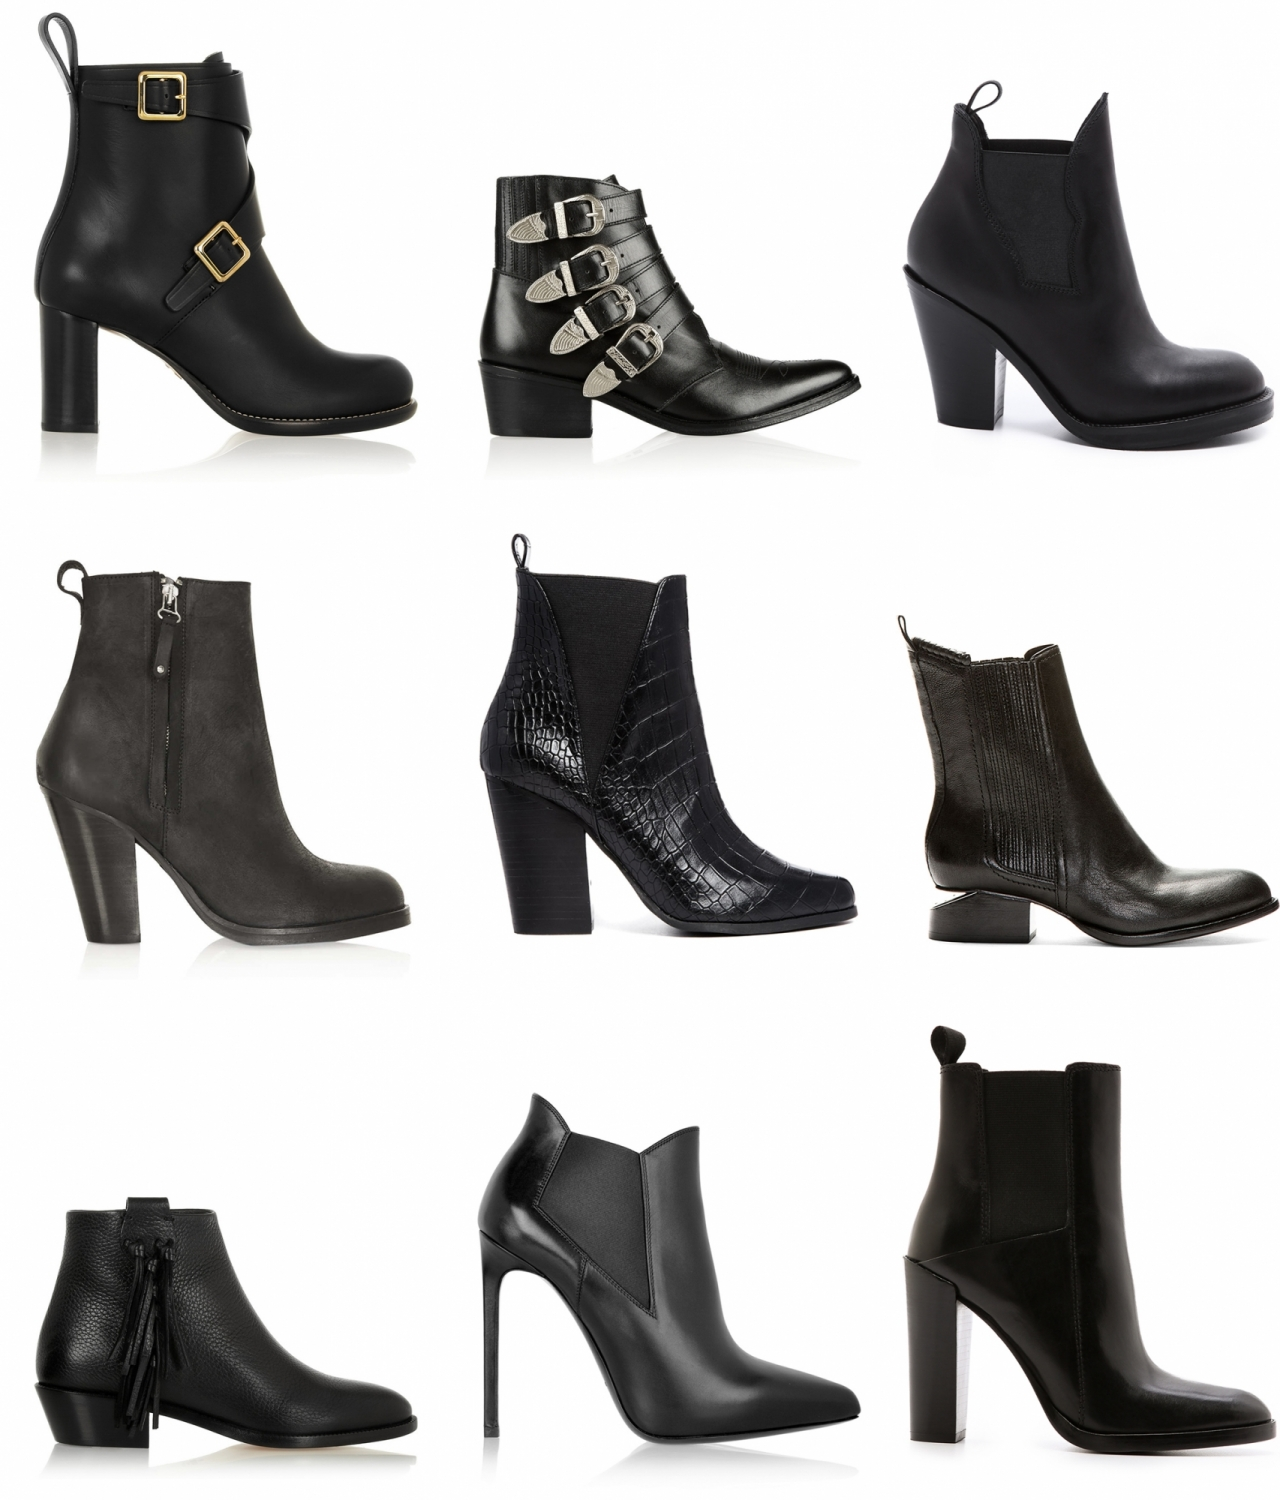 black boots-wardrobe essentials-harper and harley-fashion blog